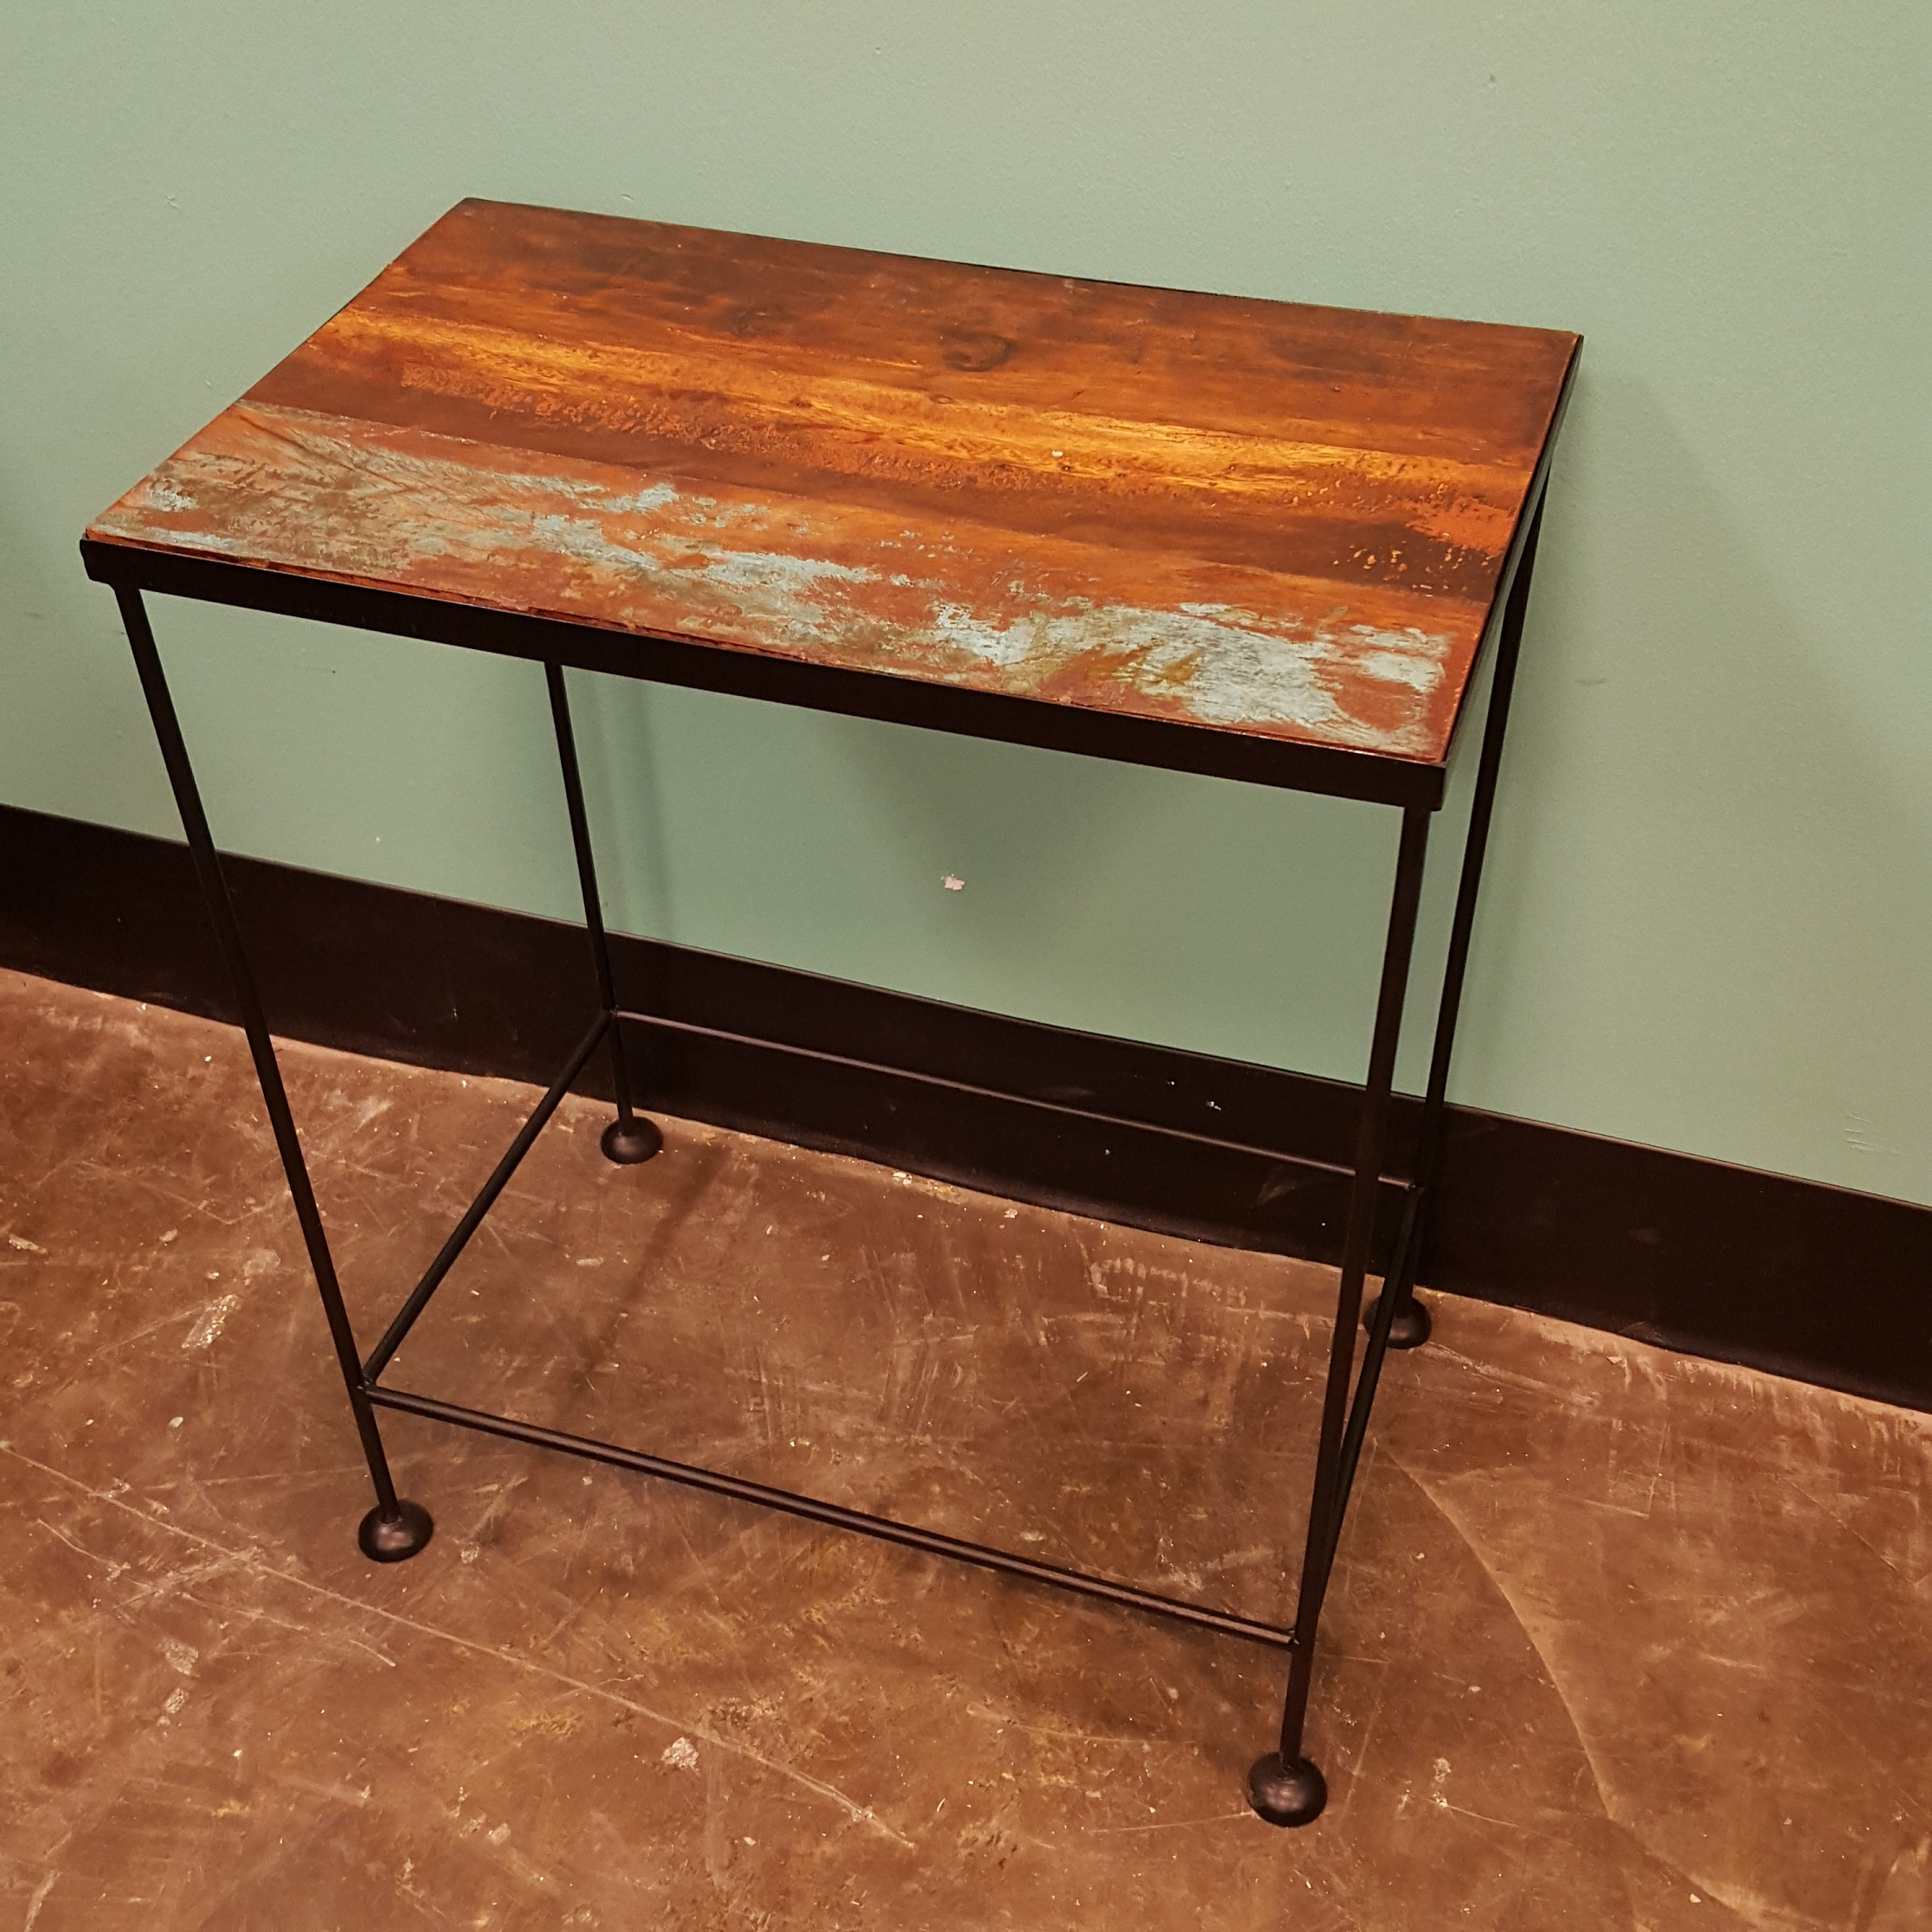 Iron and wood side table nadeau memphis for Iron and wood side table